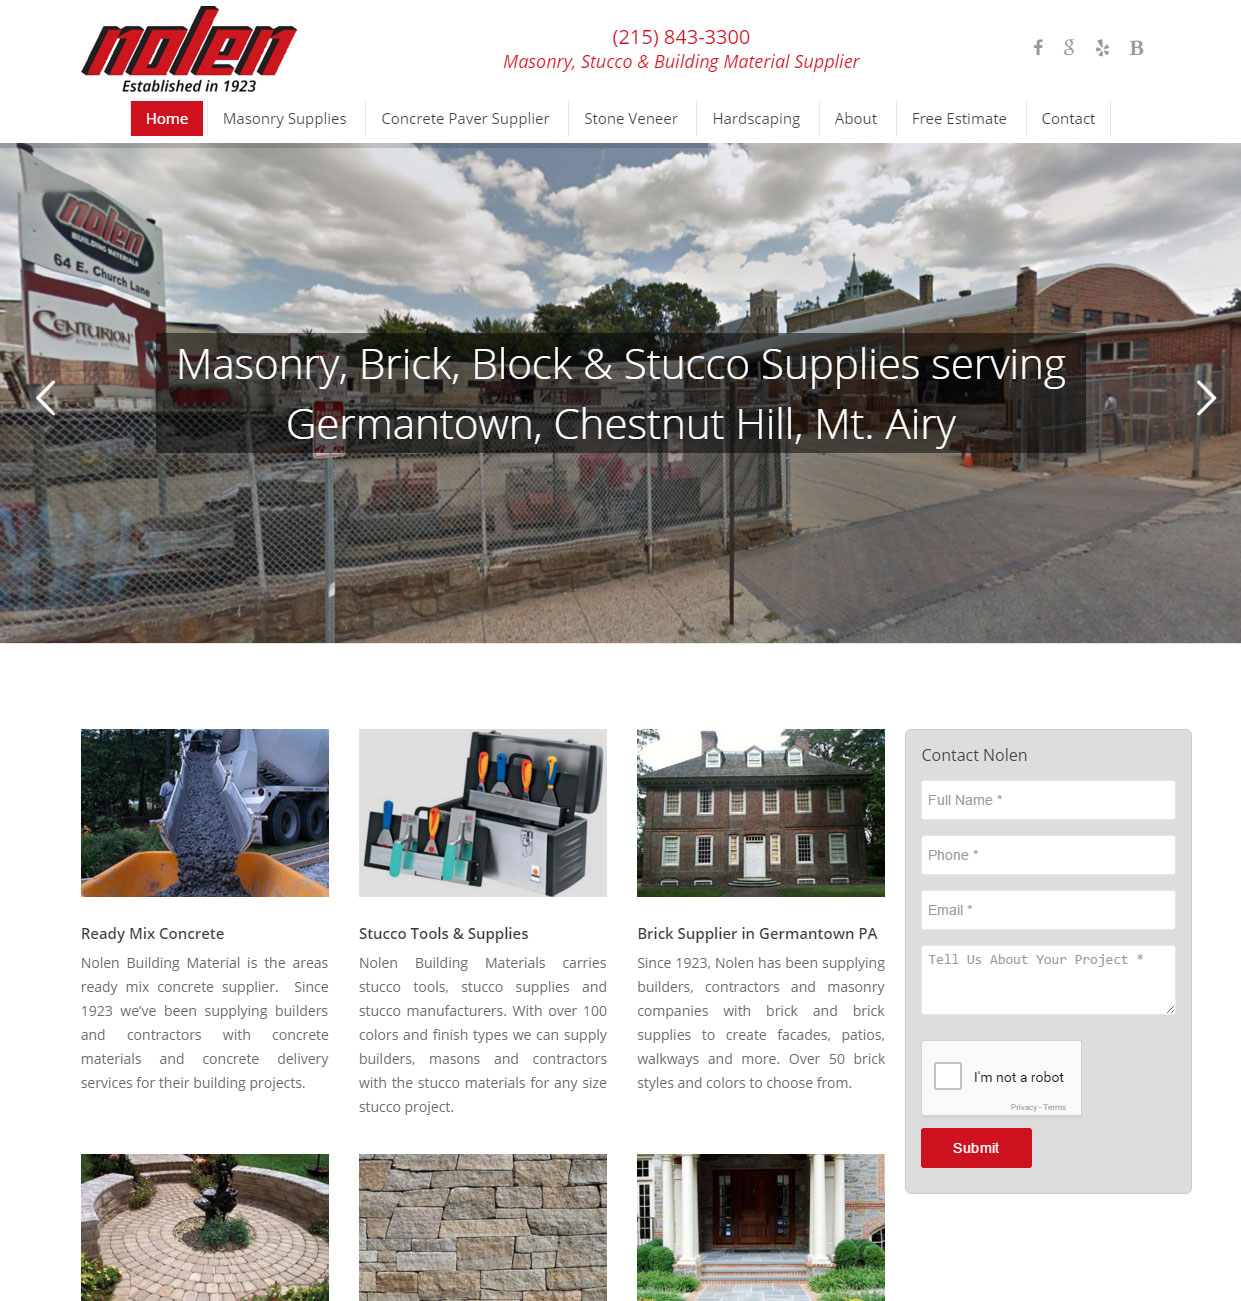 custom website design from building supply company